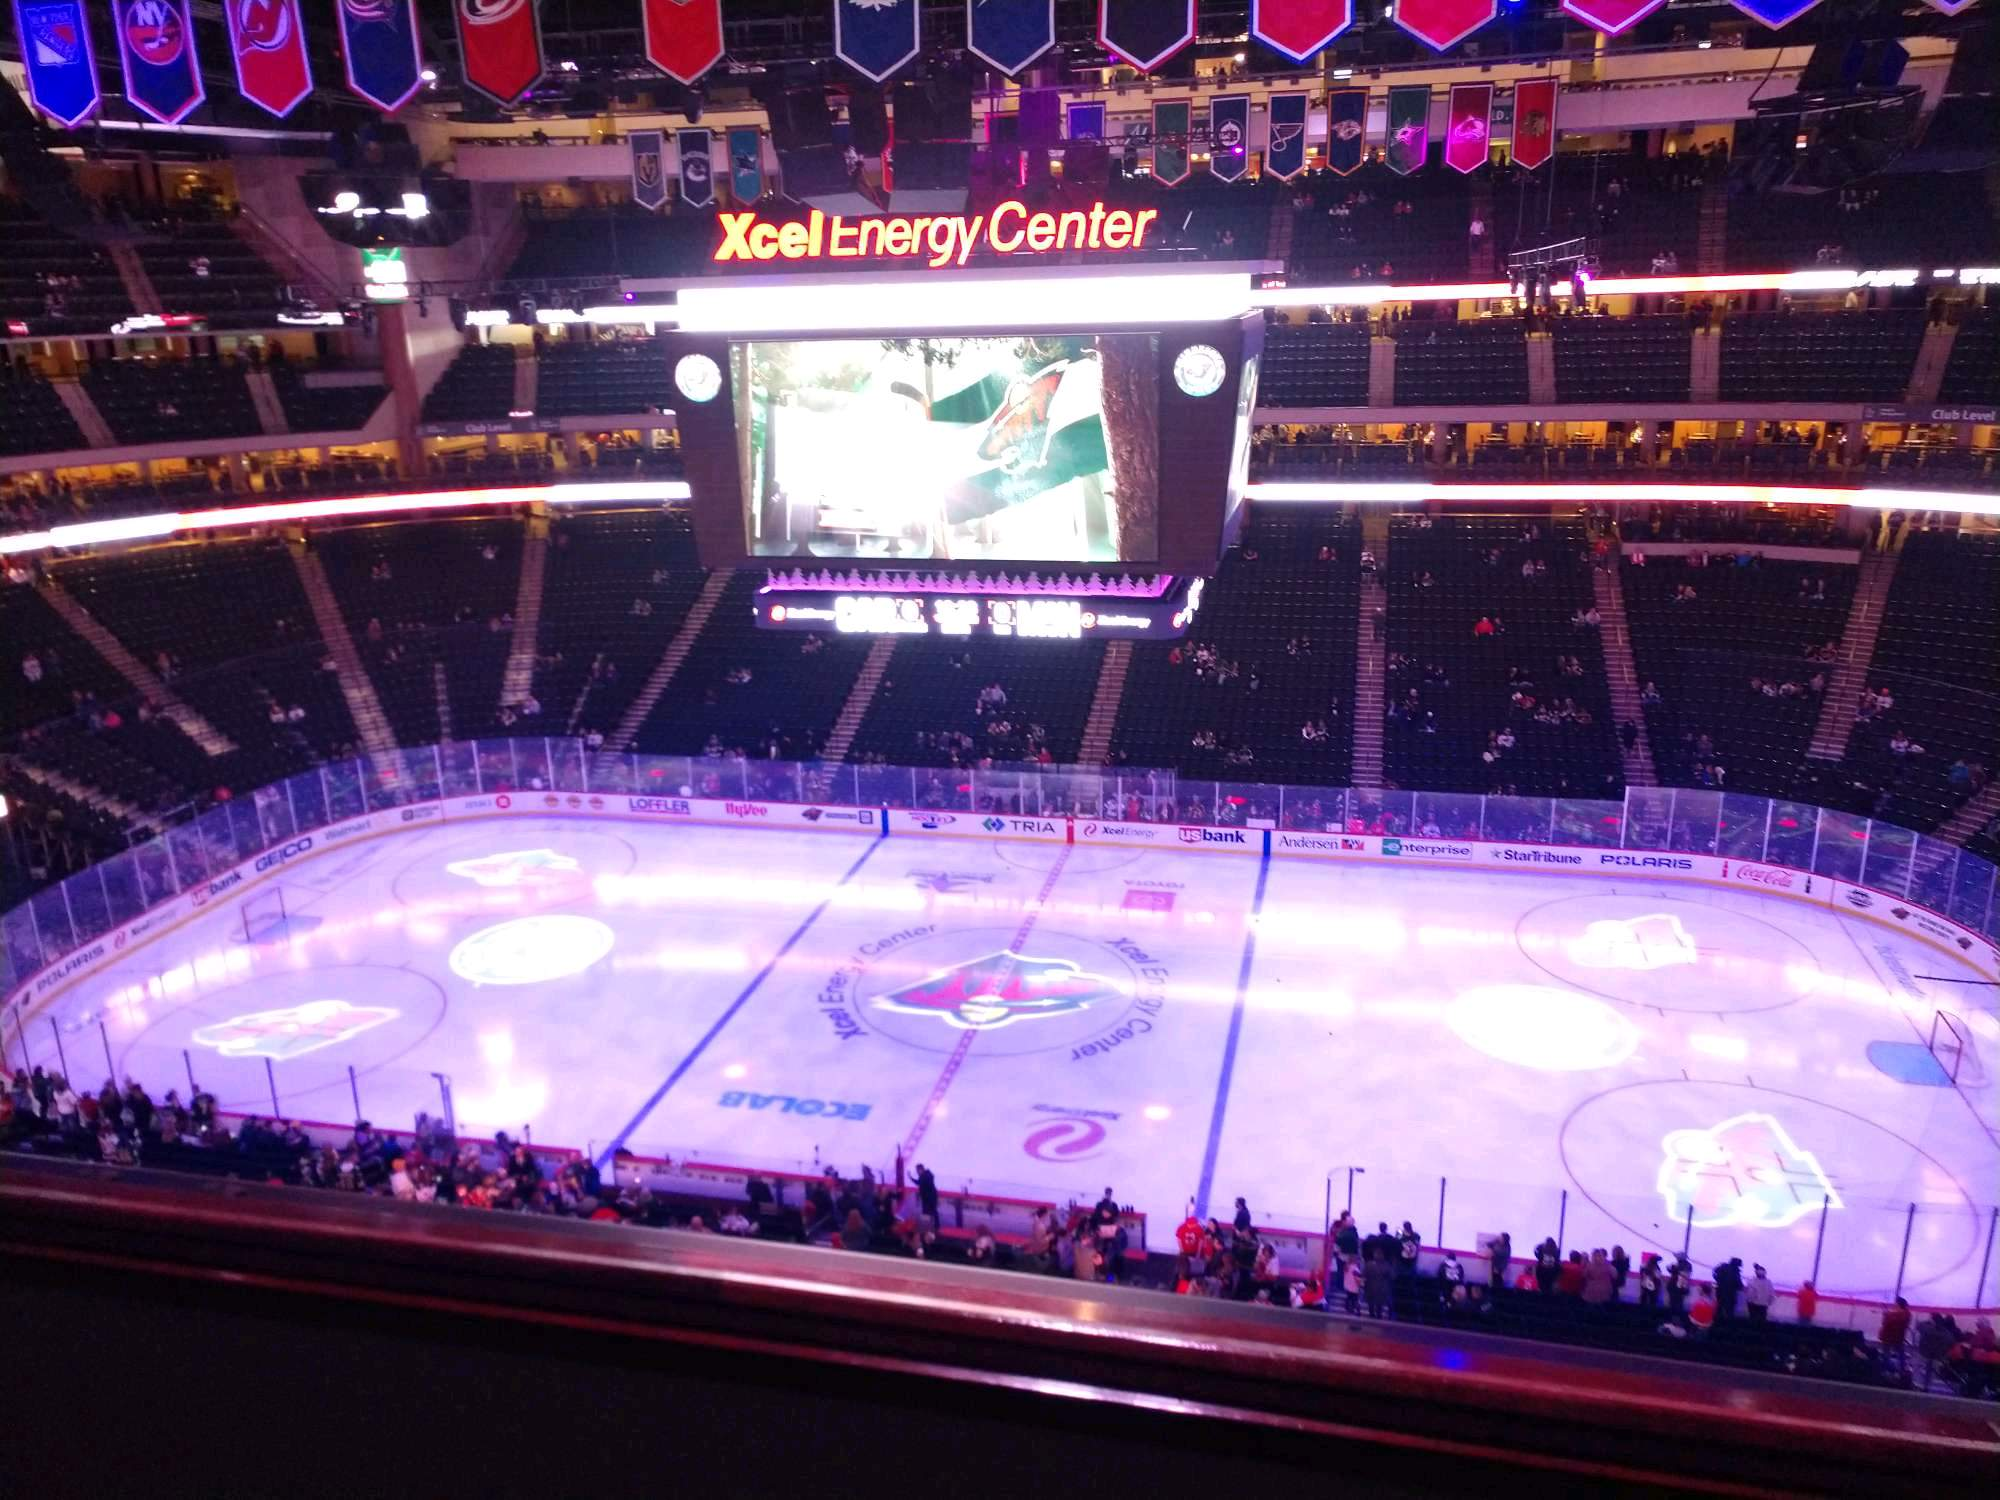 Xcel Energy Center Section 218 Row 2 Seat 10